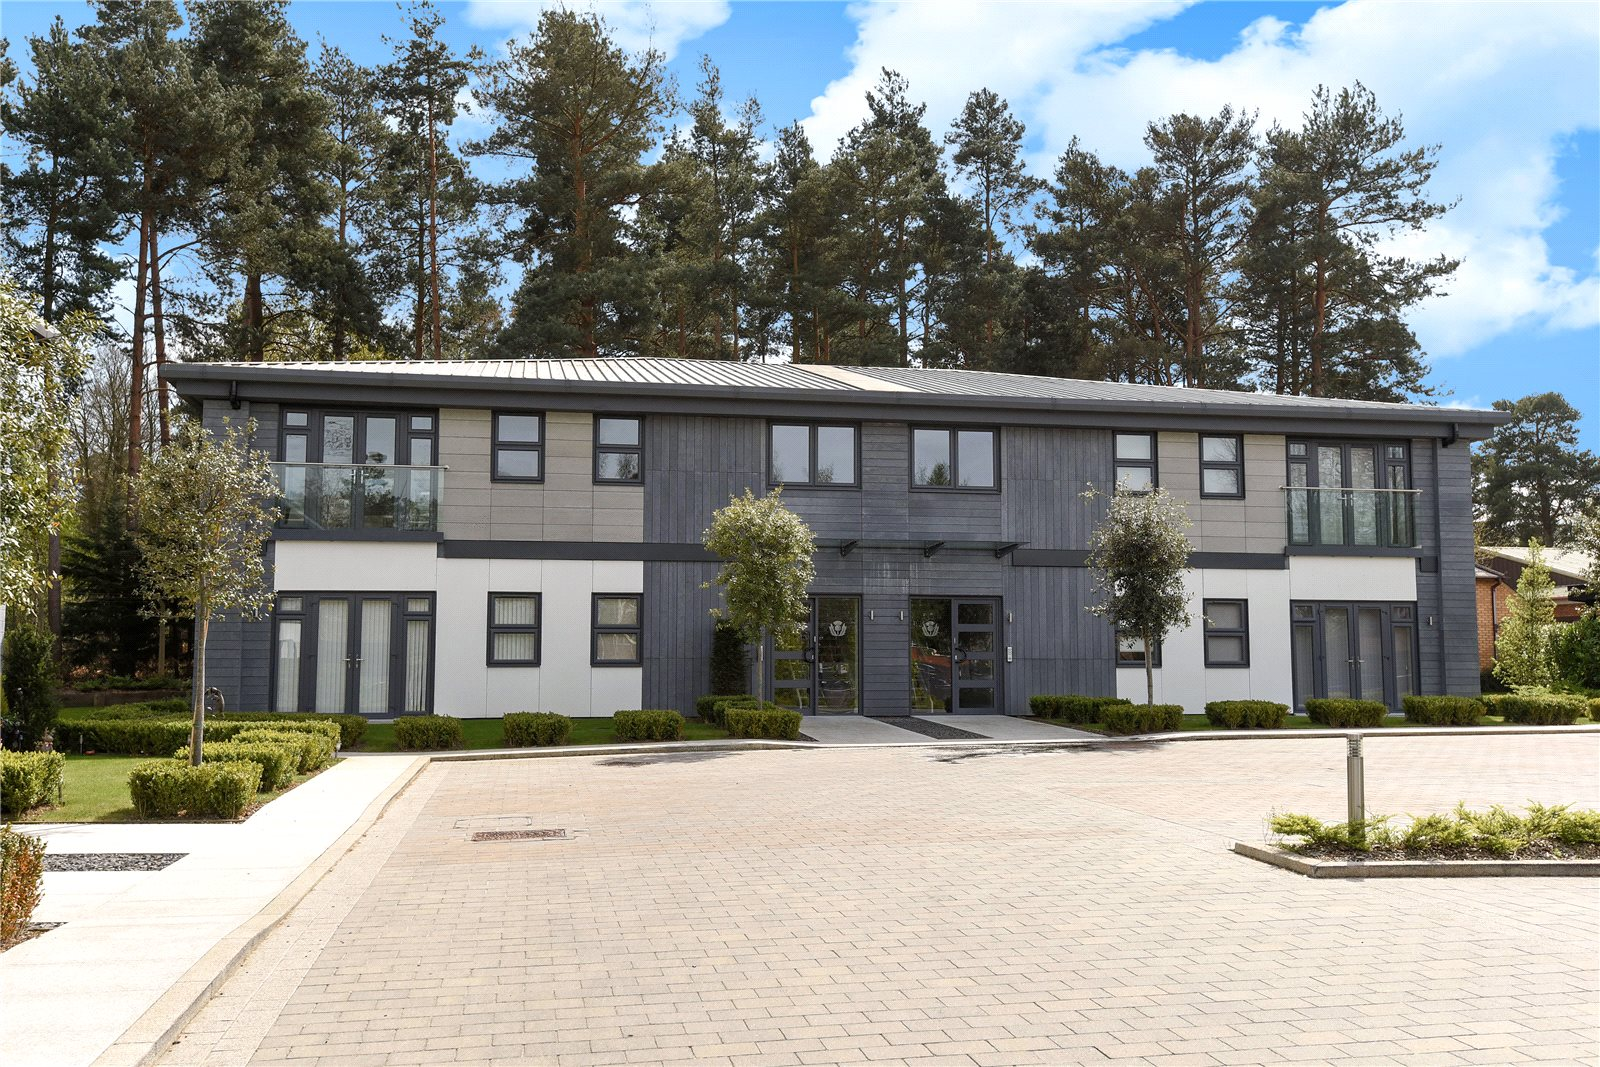 2 Bedrooms Apartment Flat for sale in Corunna Court, Wellington Business Park, Crowthorne, Berkshire, RG45